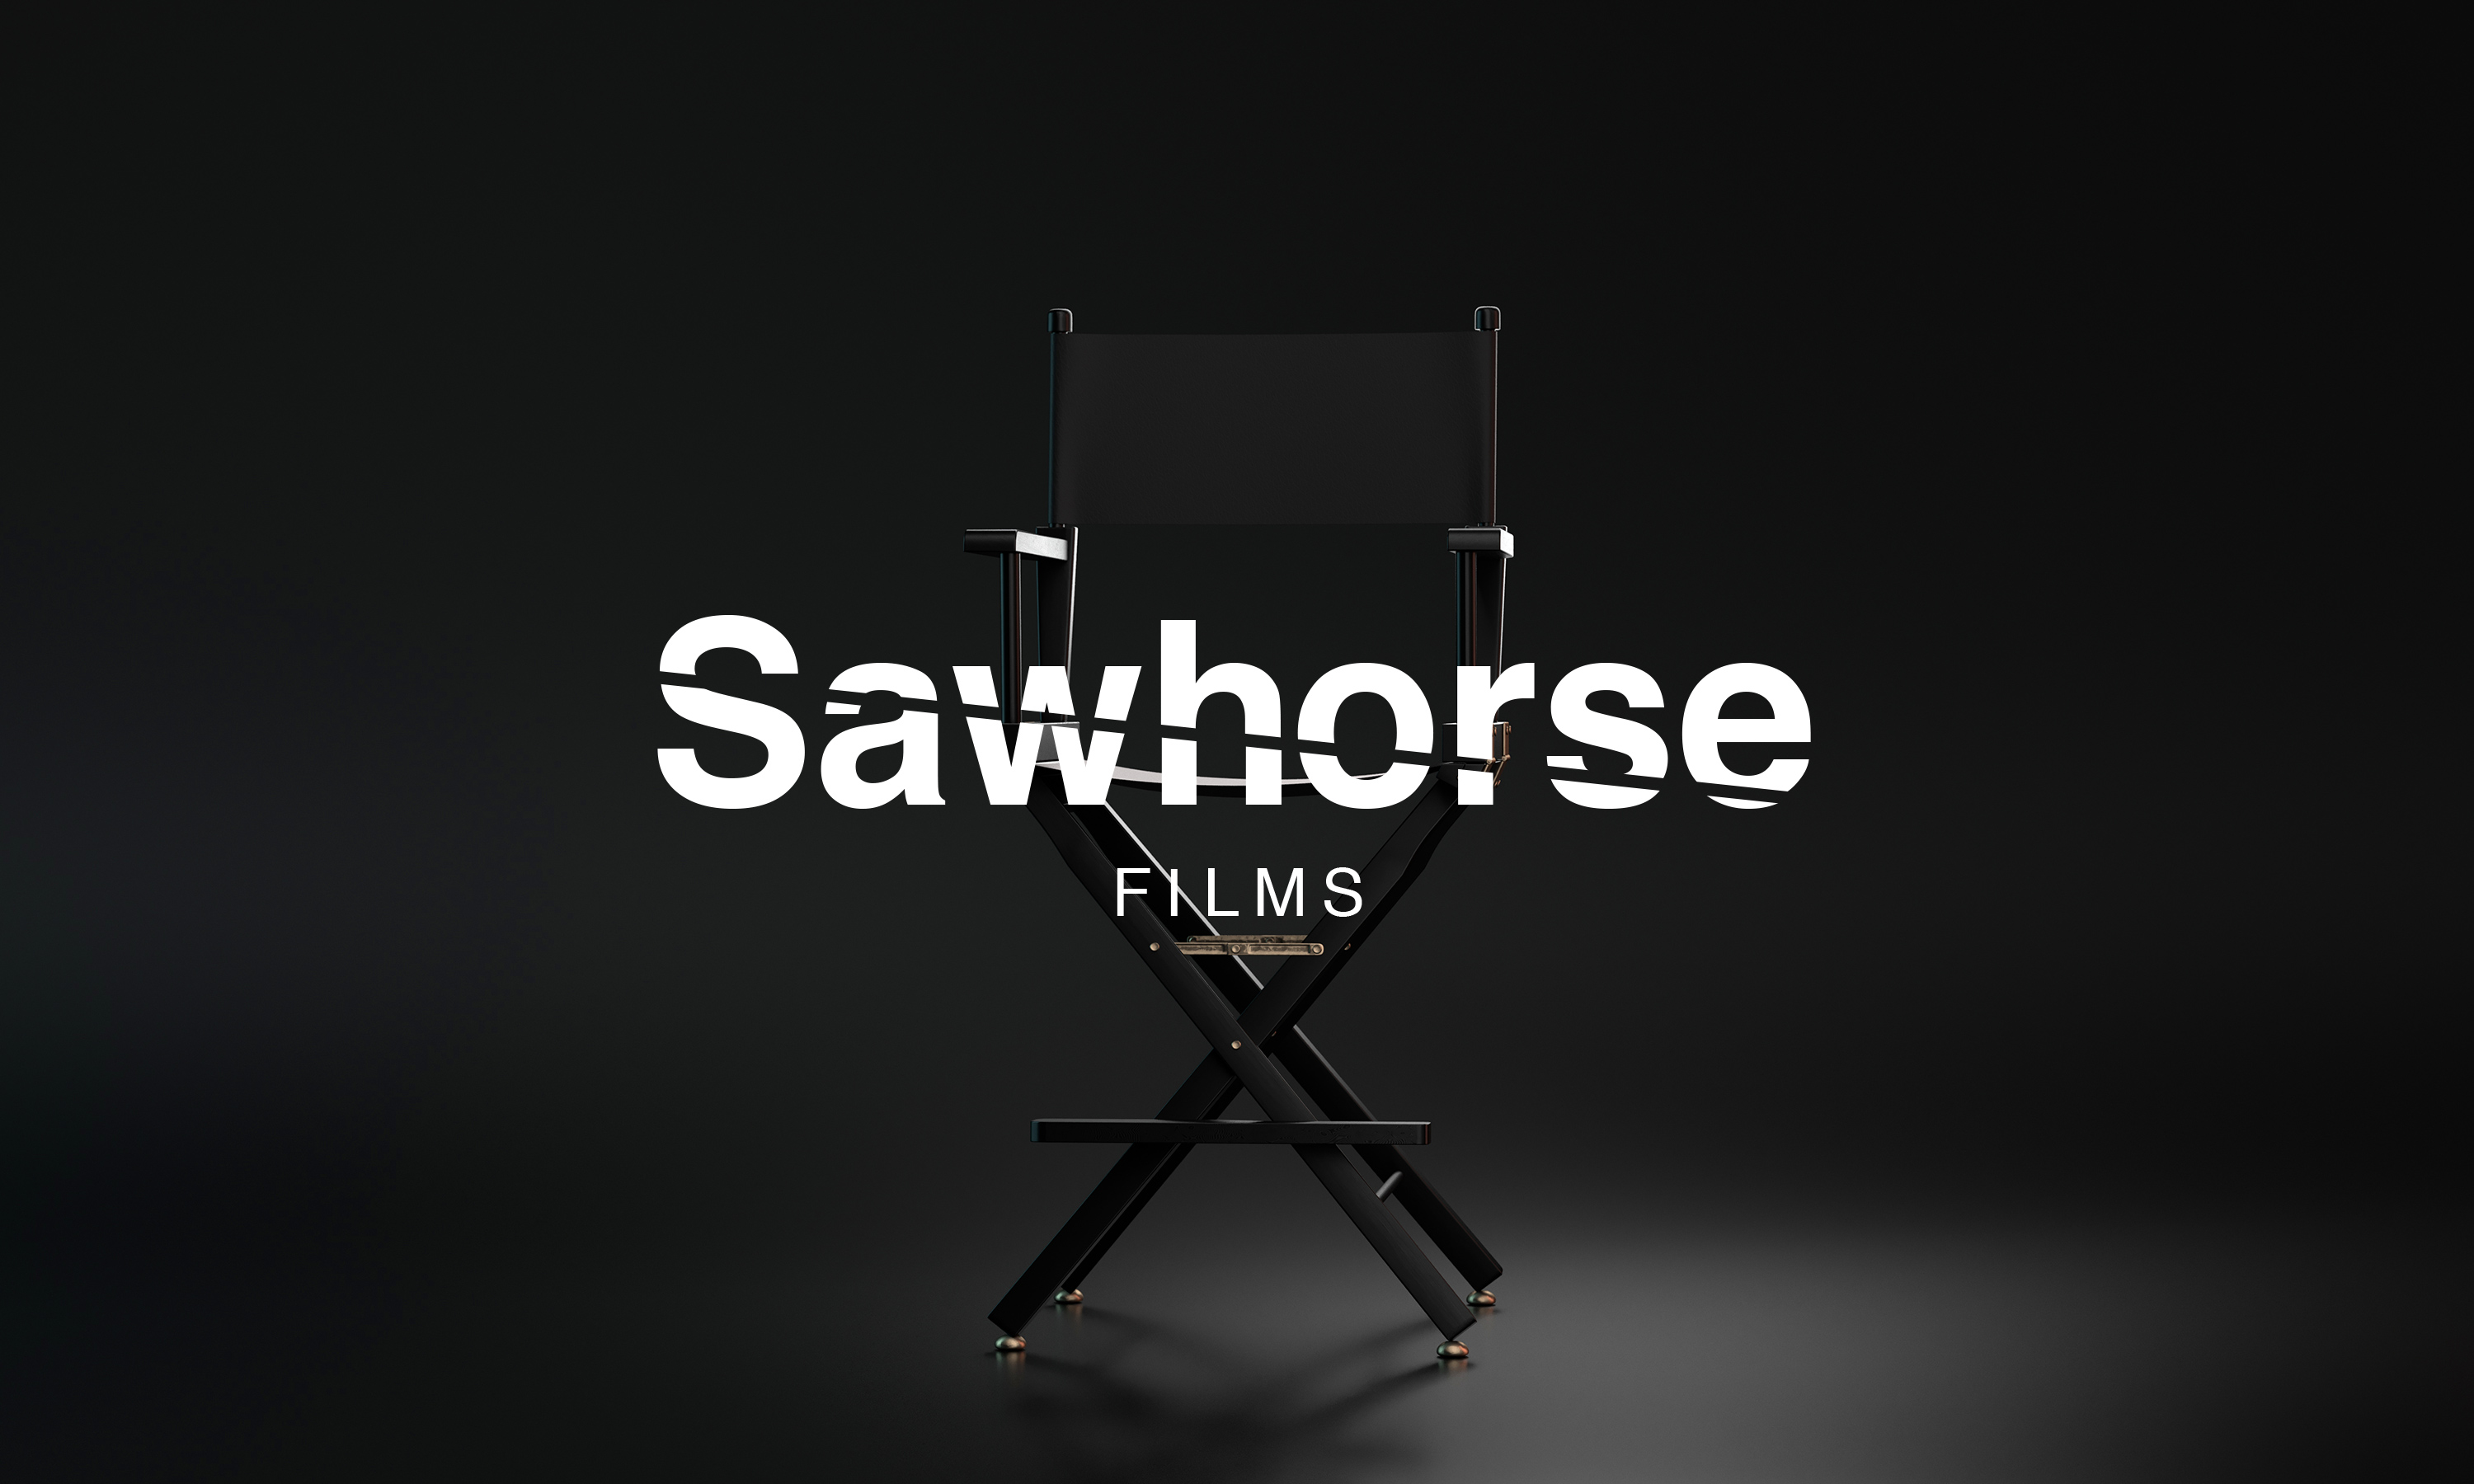 Naming and branding by Neon Sawhorse Films logo designed by Dana Robertson